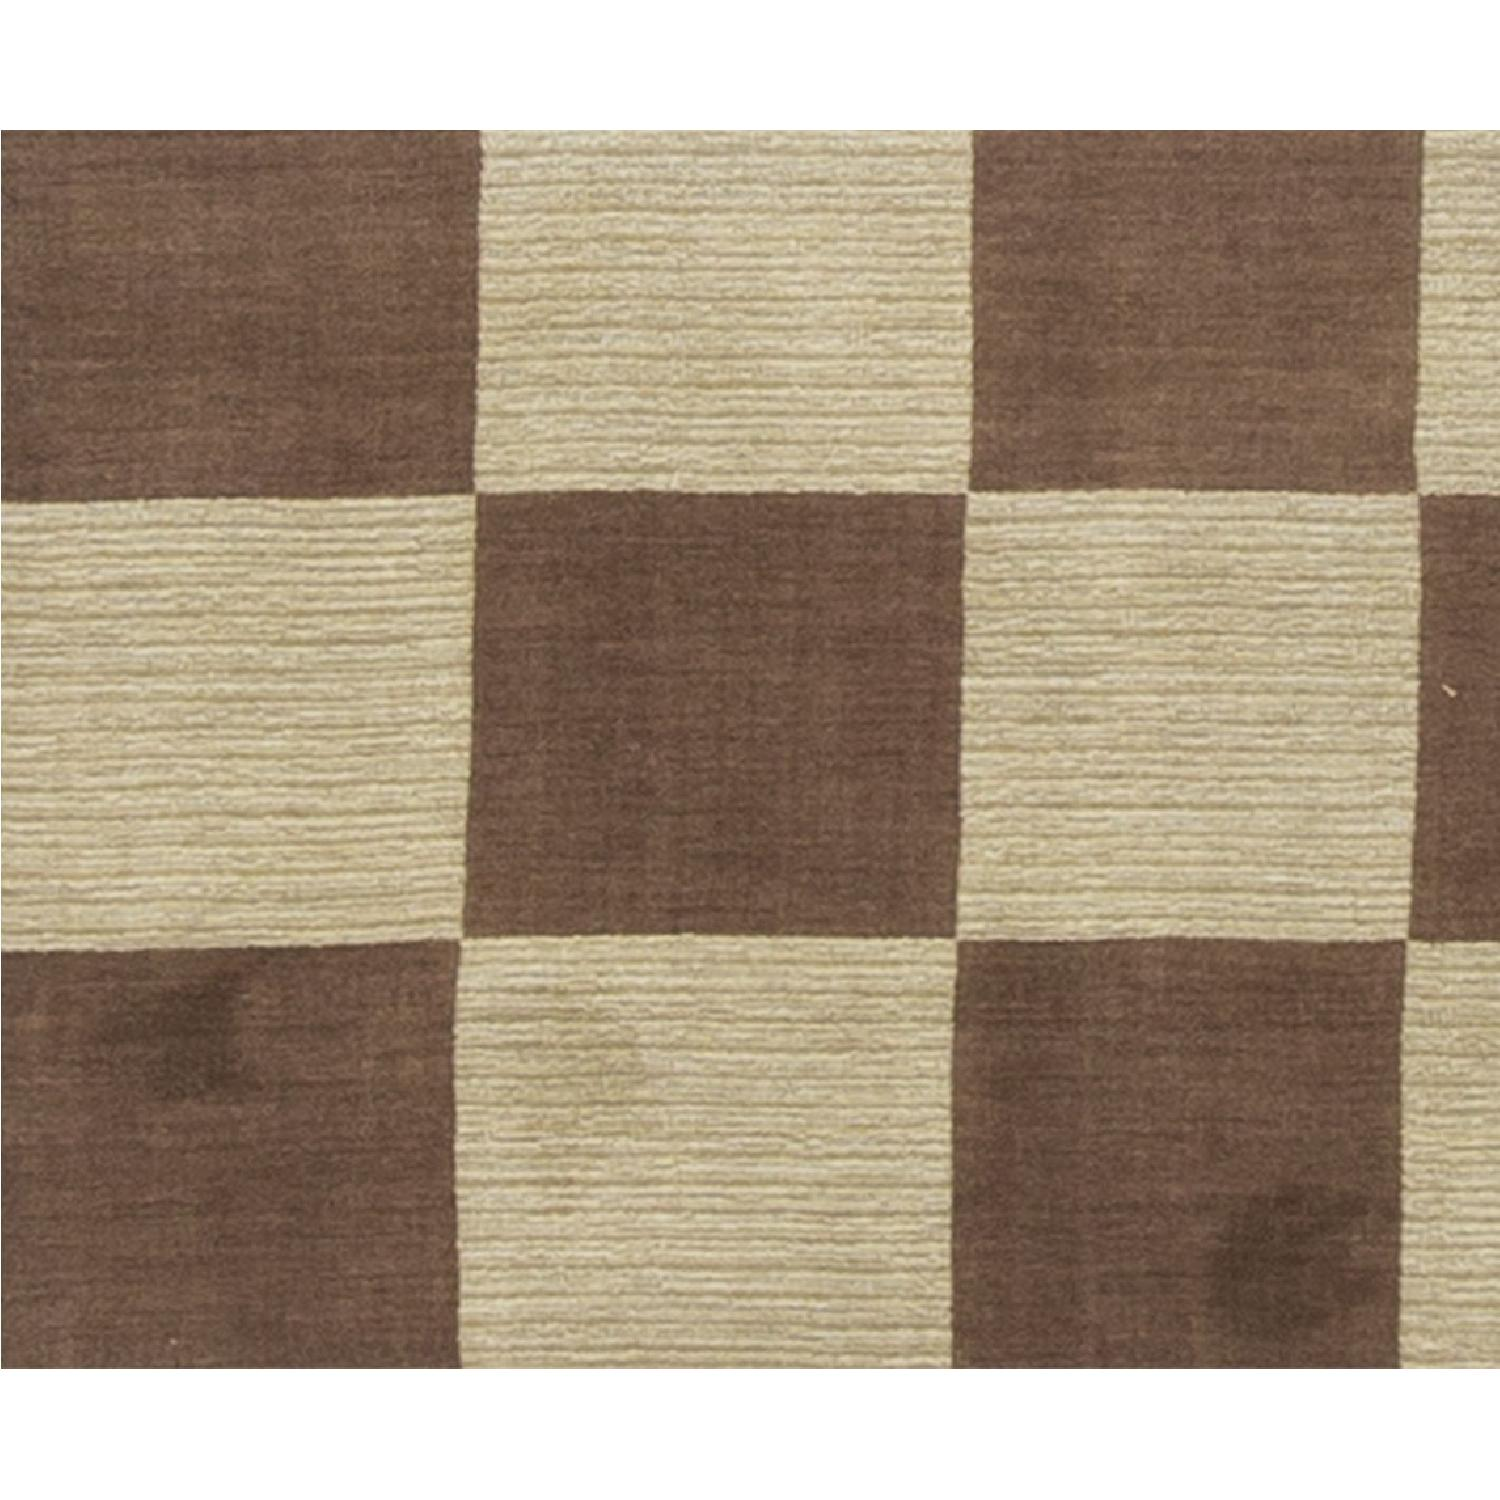 Modern Contemporary Hand Knotted Wool Rug in Brown/Multi - image-3